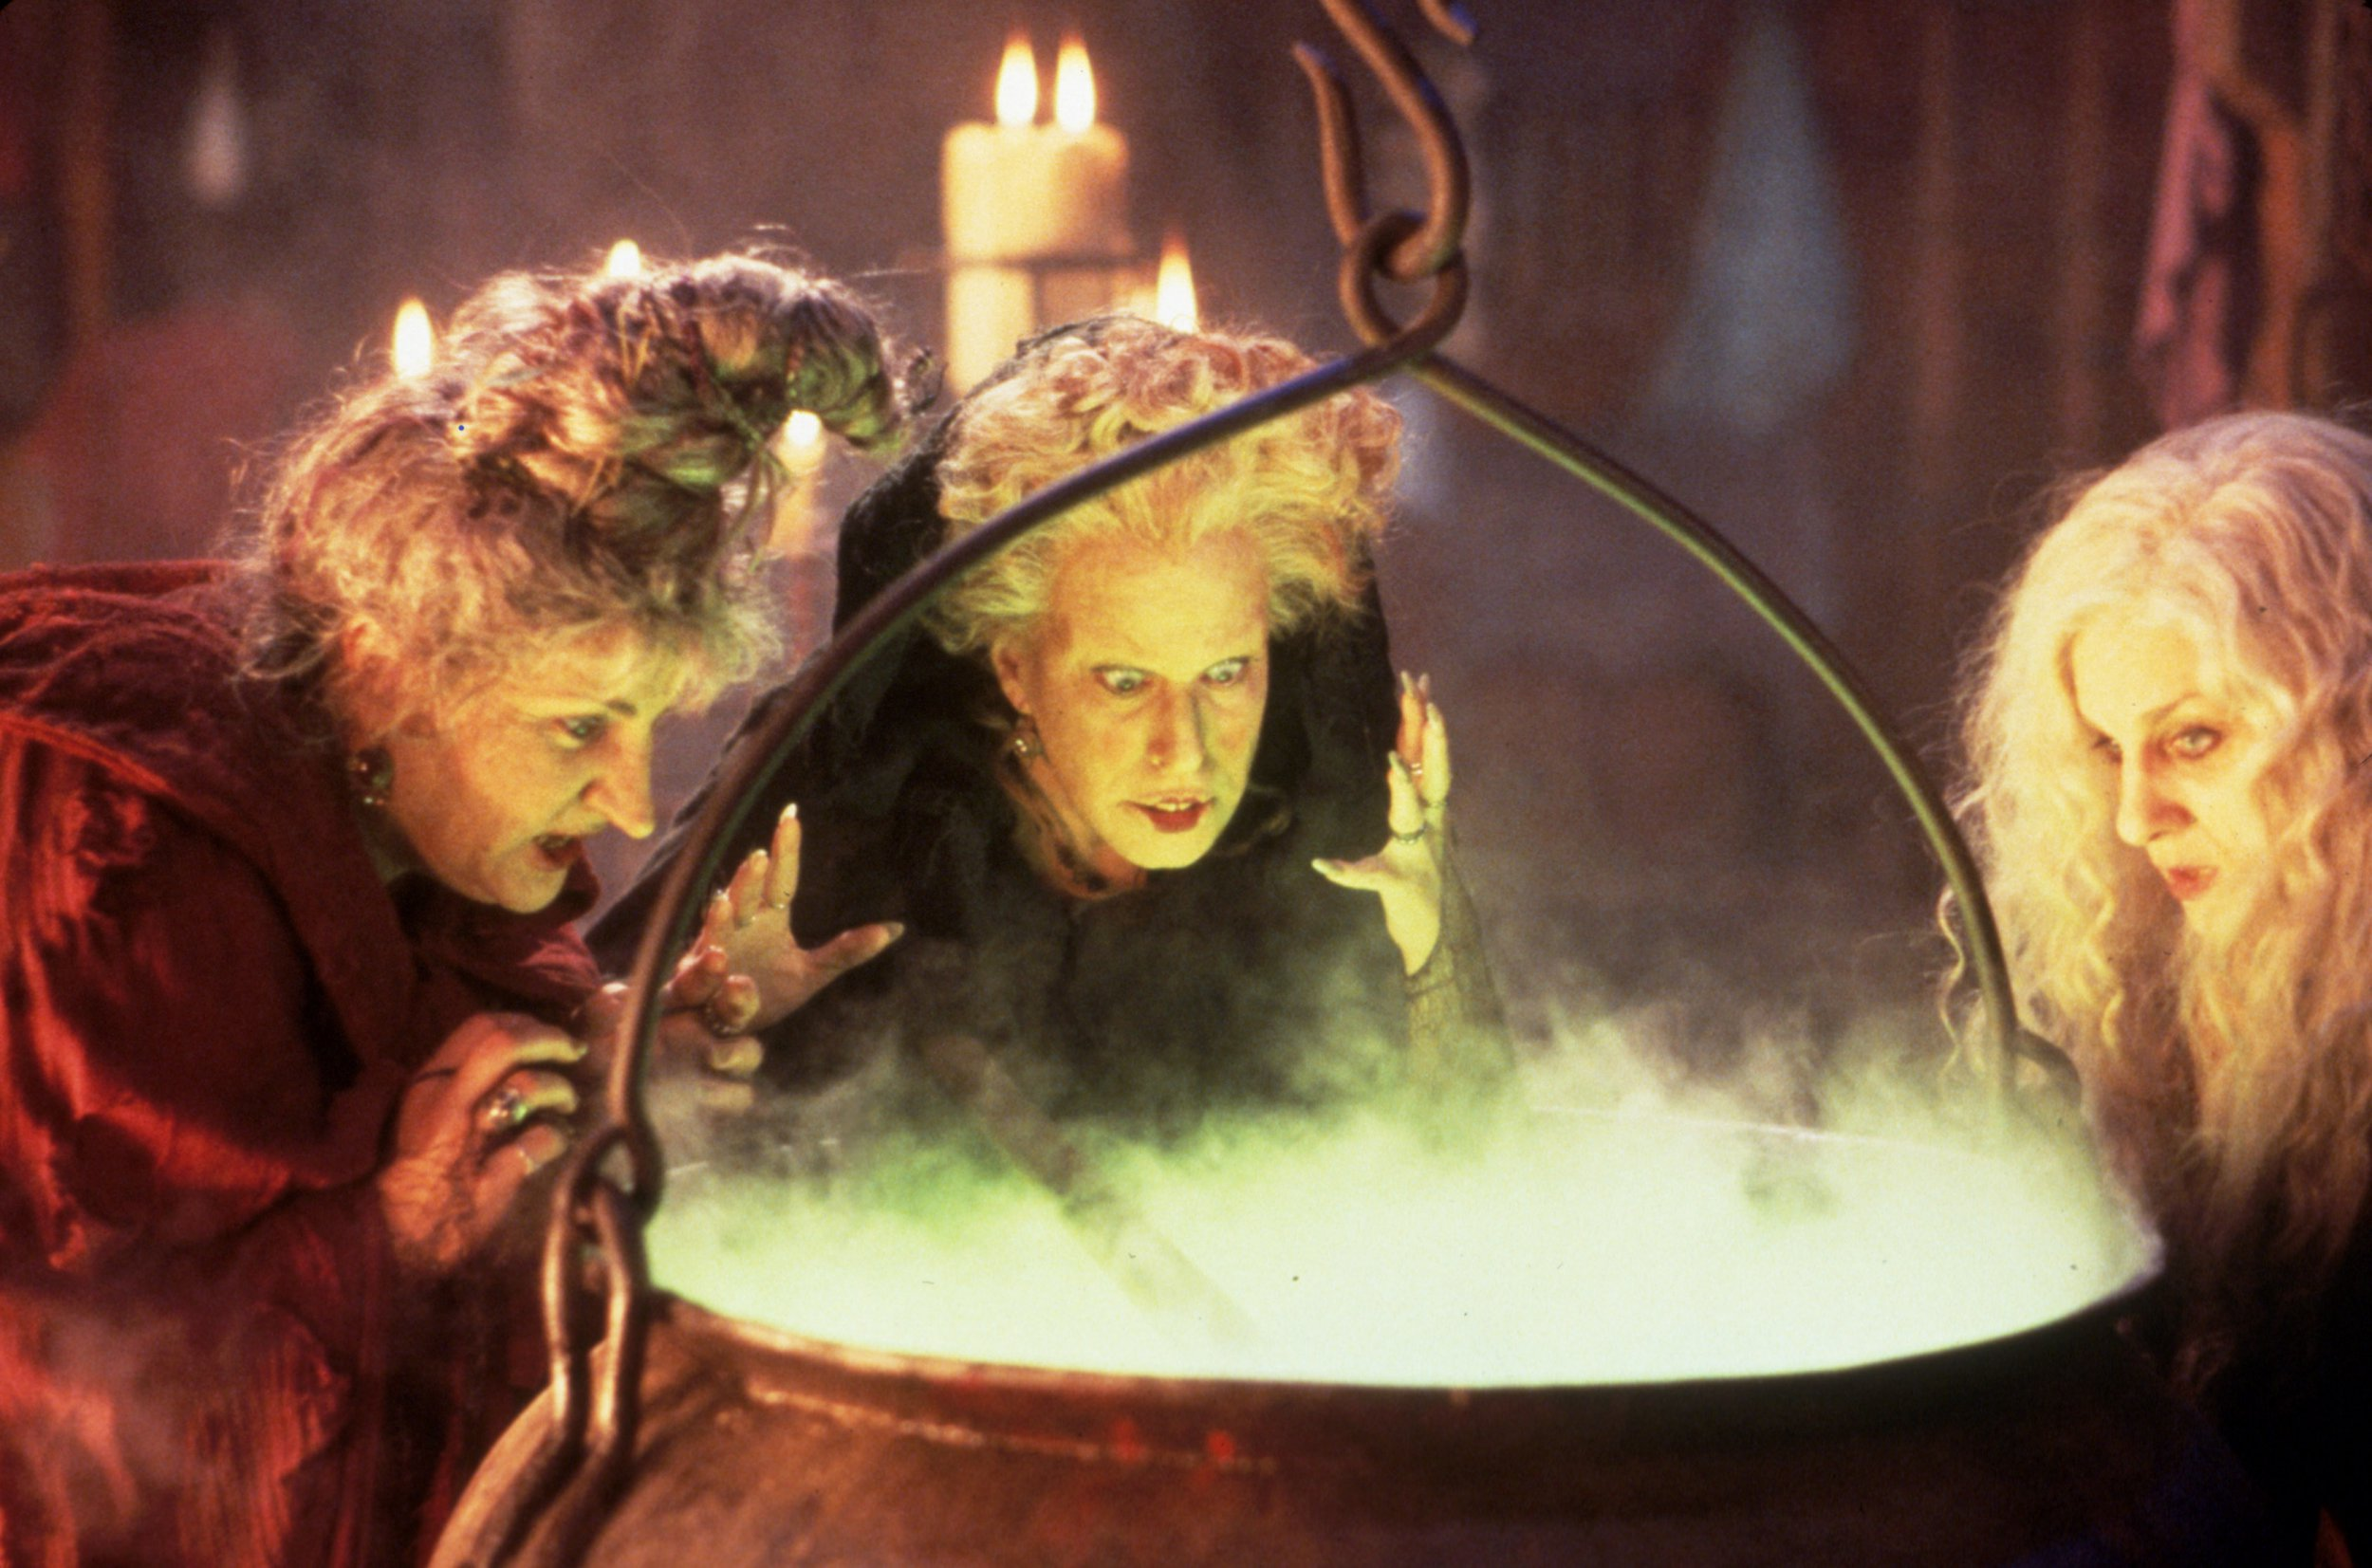 Bette Midler isn't here for the Hocus Pocus remake: 'It's going to be cheap'